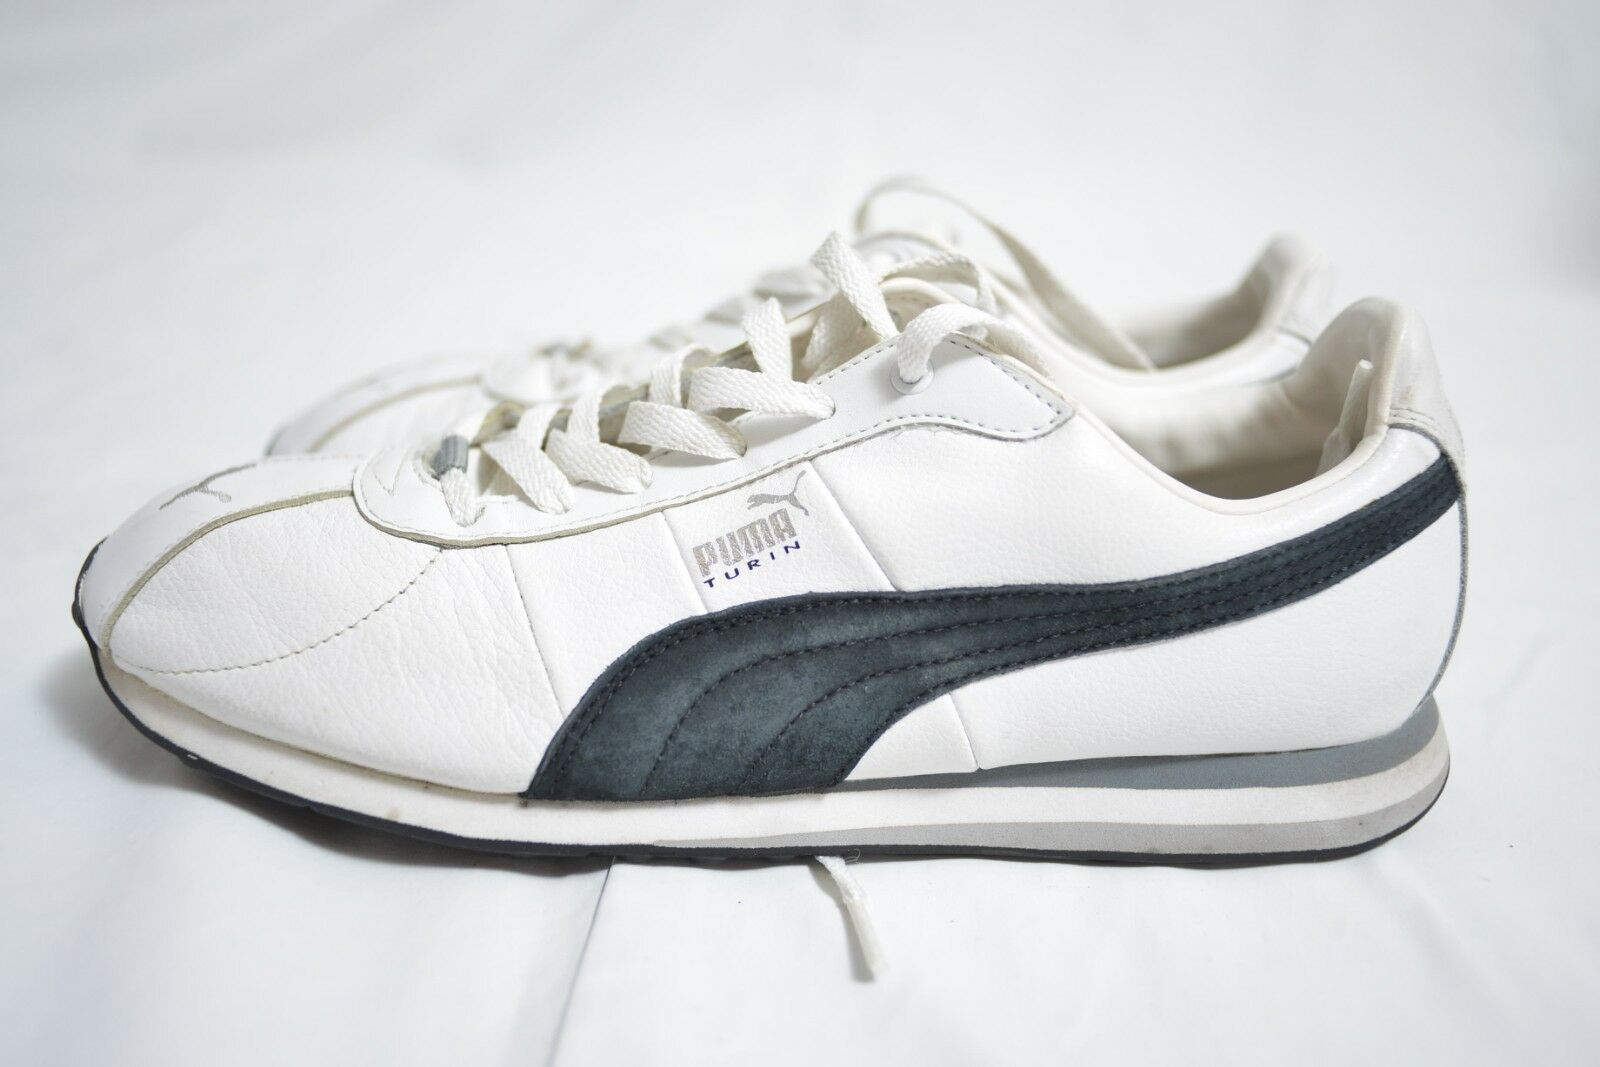 Puma Turin Men's White Athletic shoes Size 9.5 White and Black